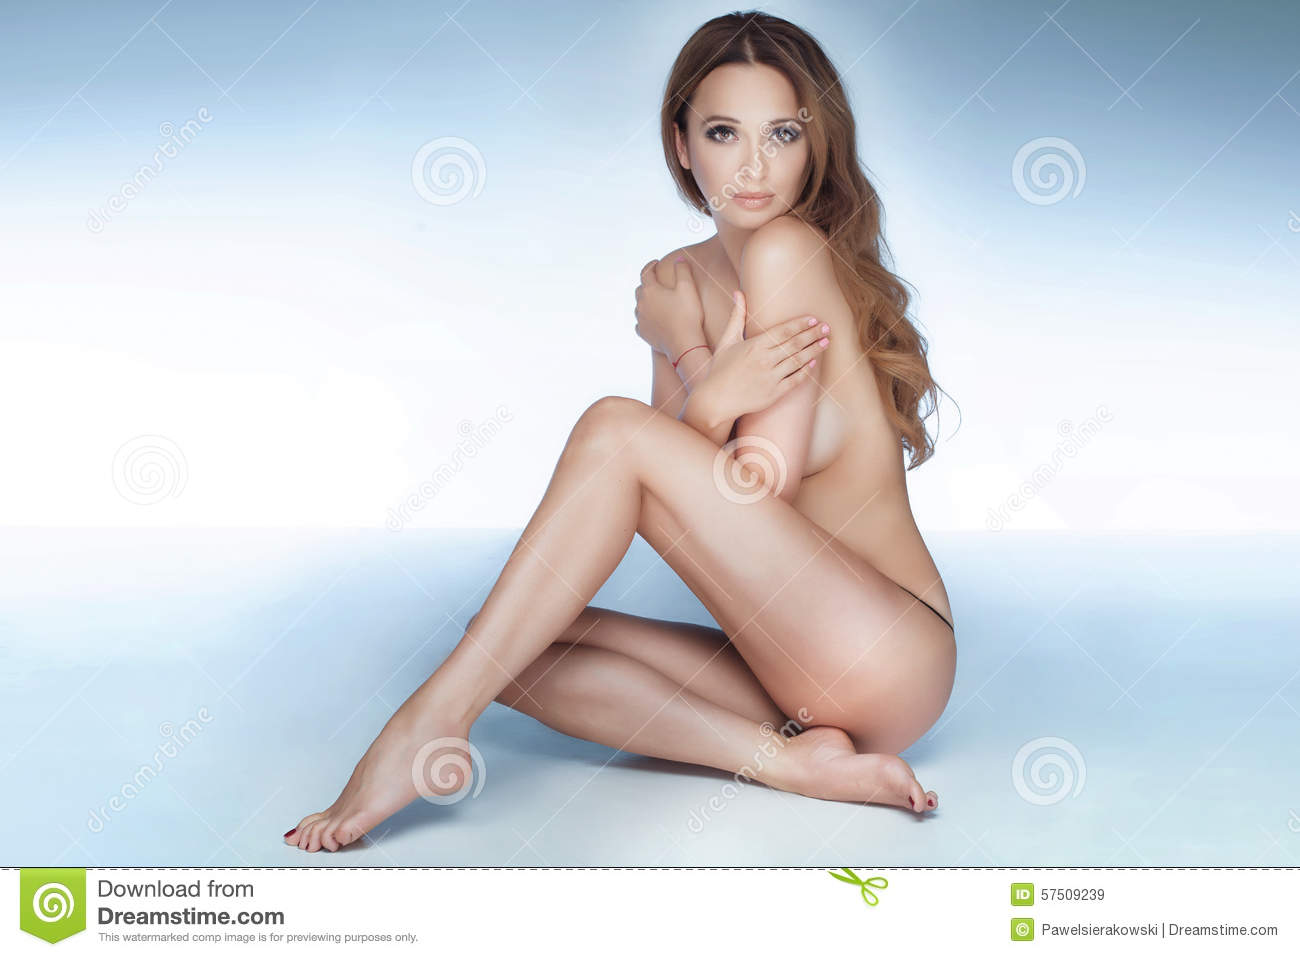 Ten year girl nude